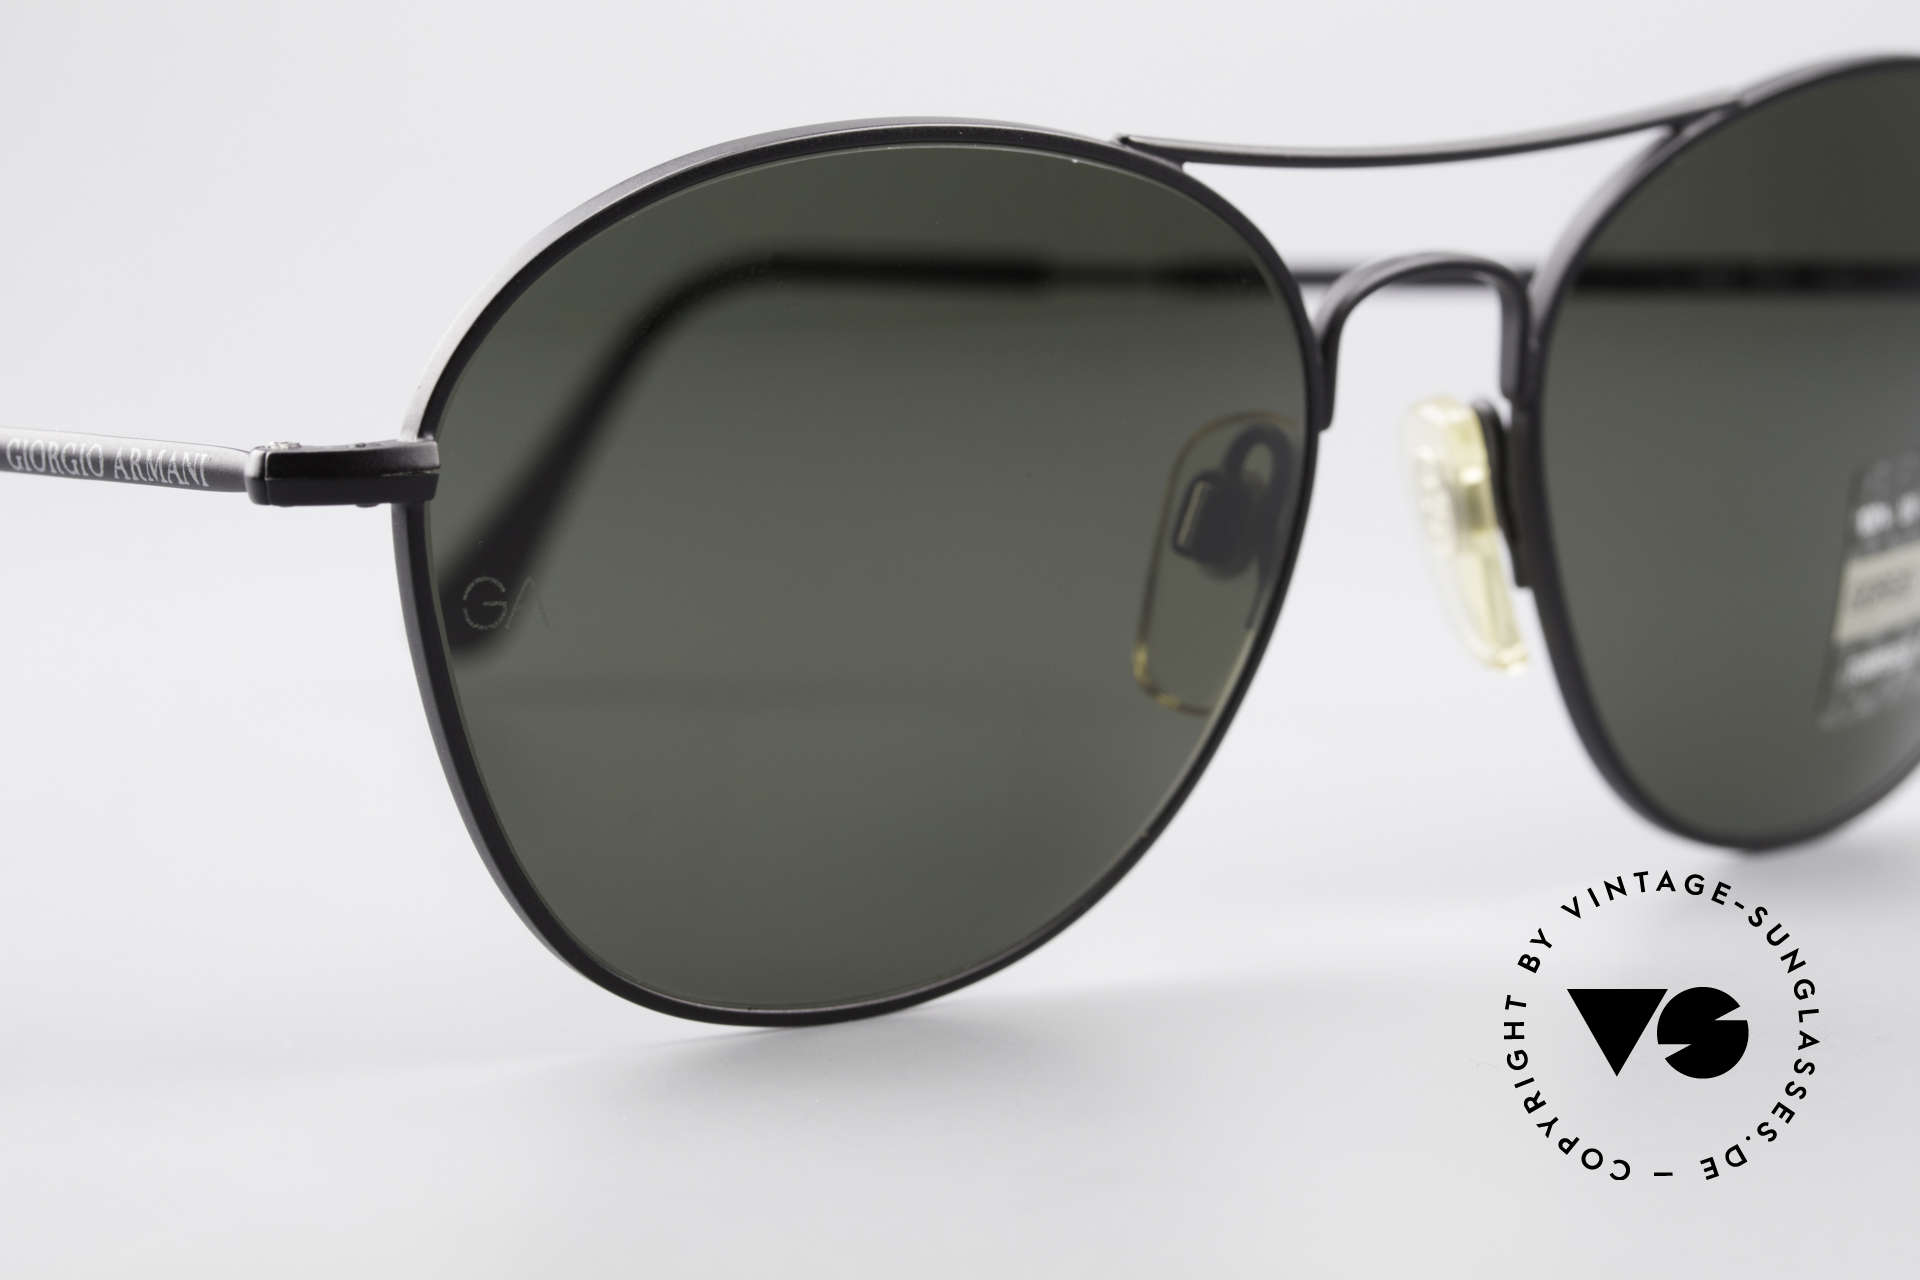 Giorgio Armani 646 Aviator Style Designer Shades, reduced to 199,-€ (tiny scratch on the right lens), Made for Men